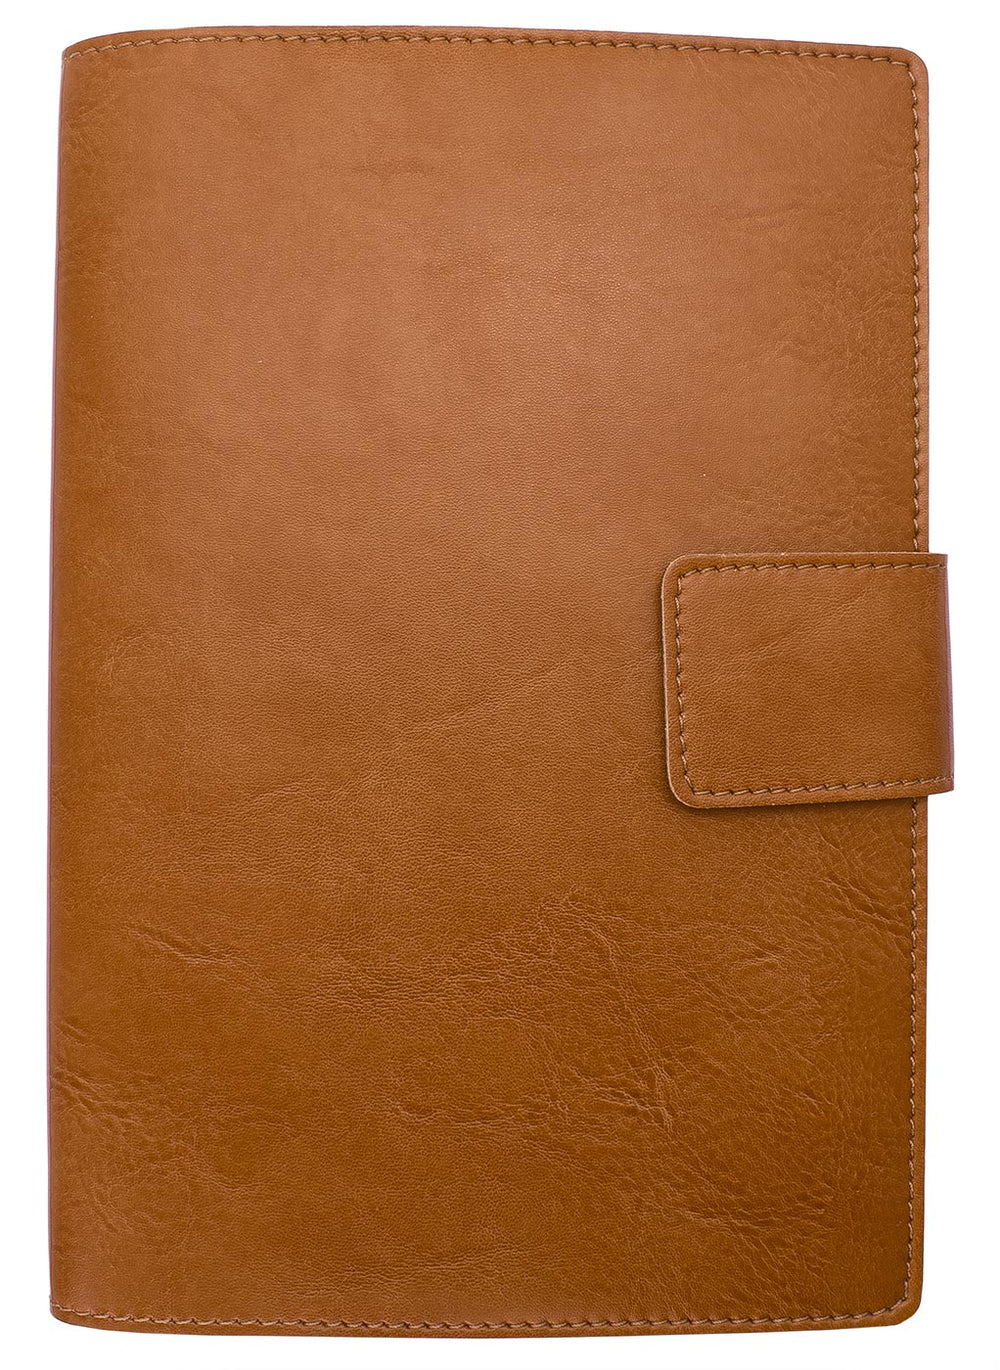 Fiorentina Refillable Bi-Color Snap Journal Cognac w/ Dark Brown Interior